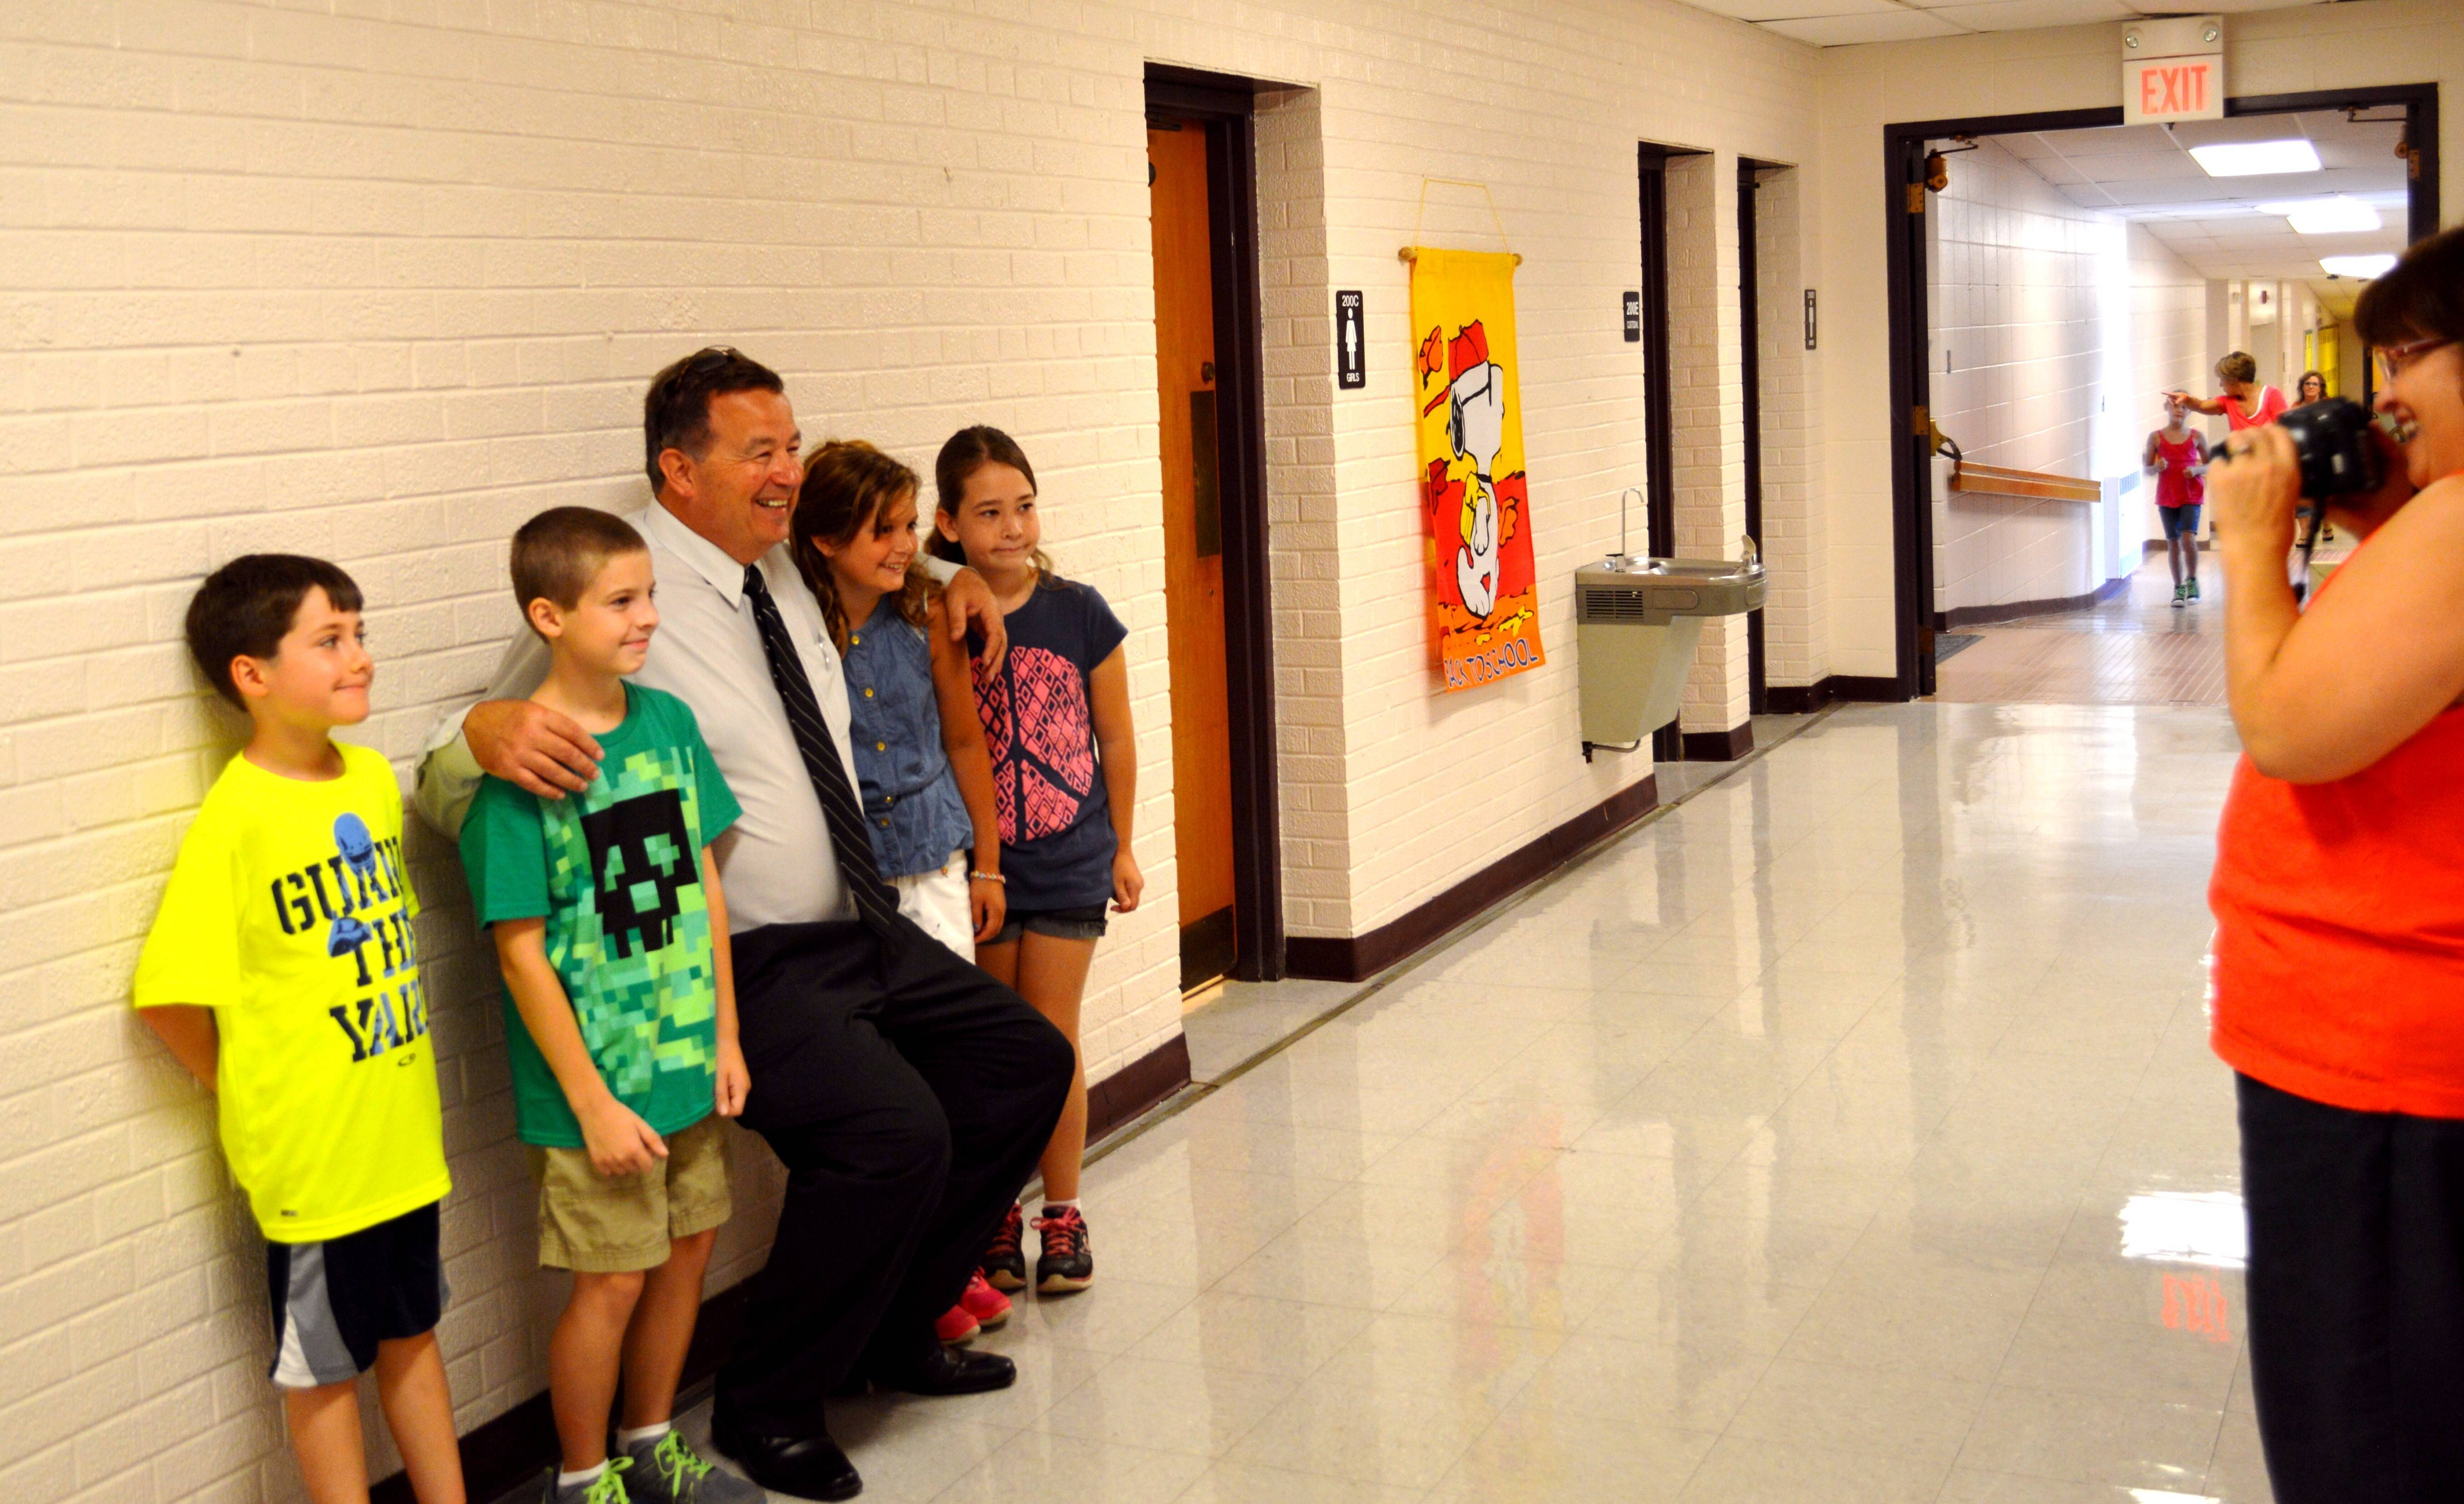 St. Charles Unit District 303 Superintendent Don Scholmann made a point of getting to know new students Wednesday during their first day at school.